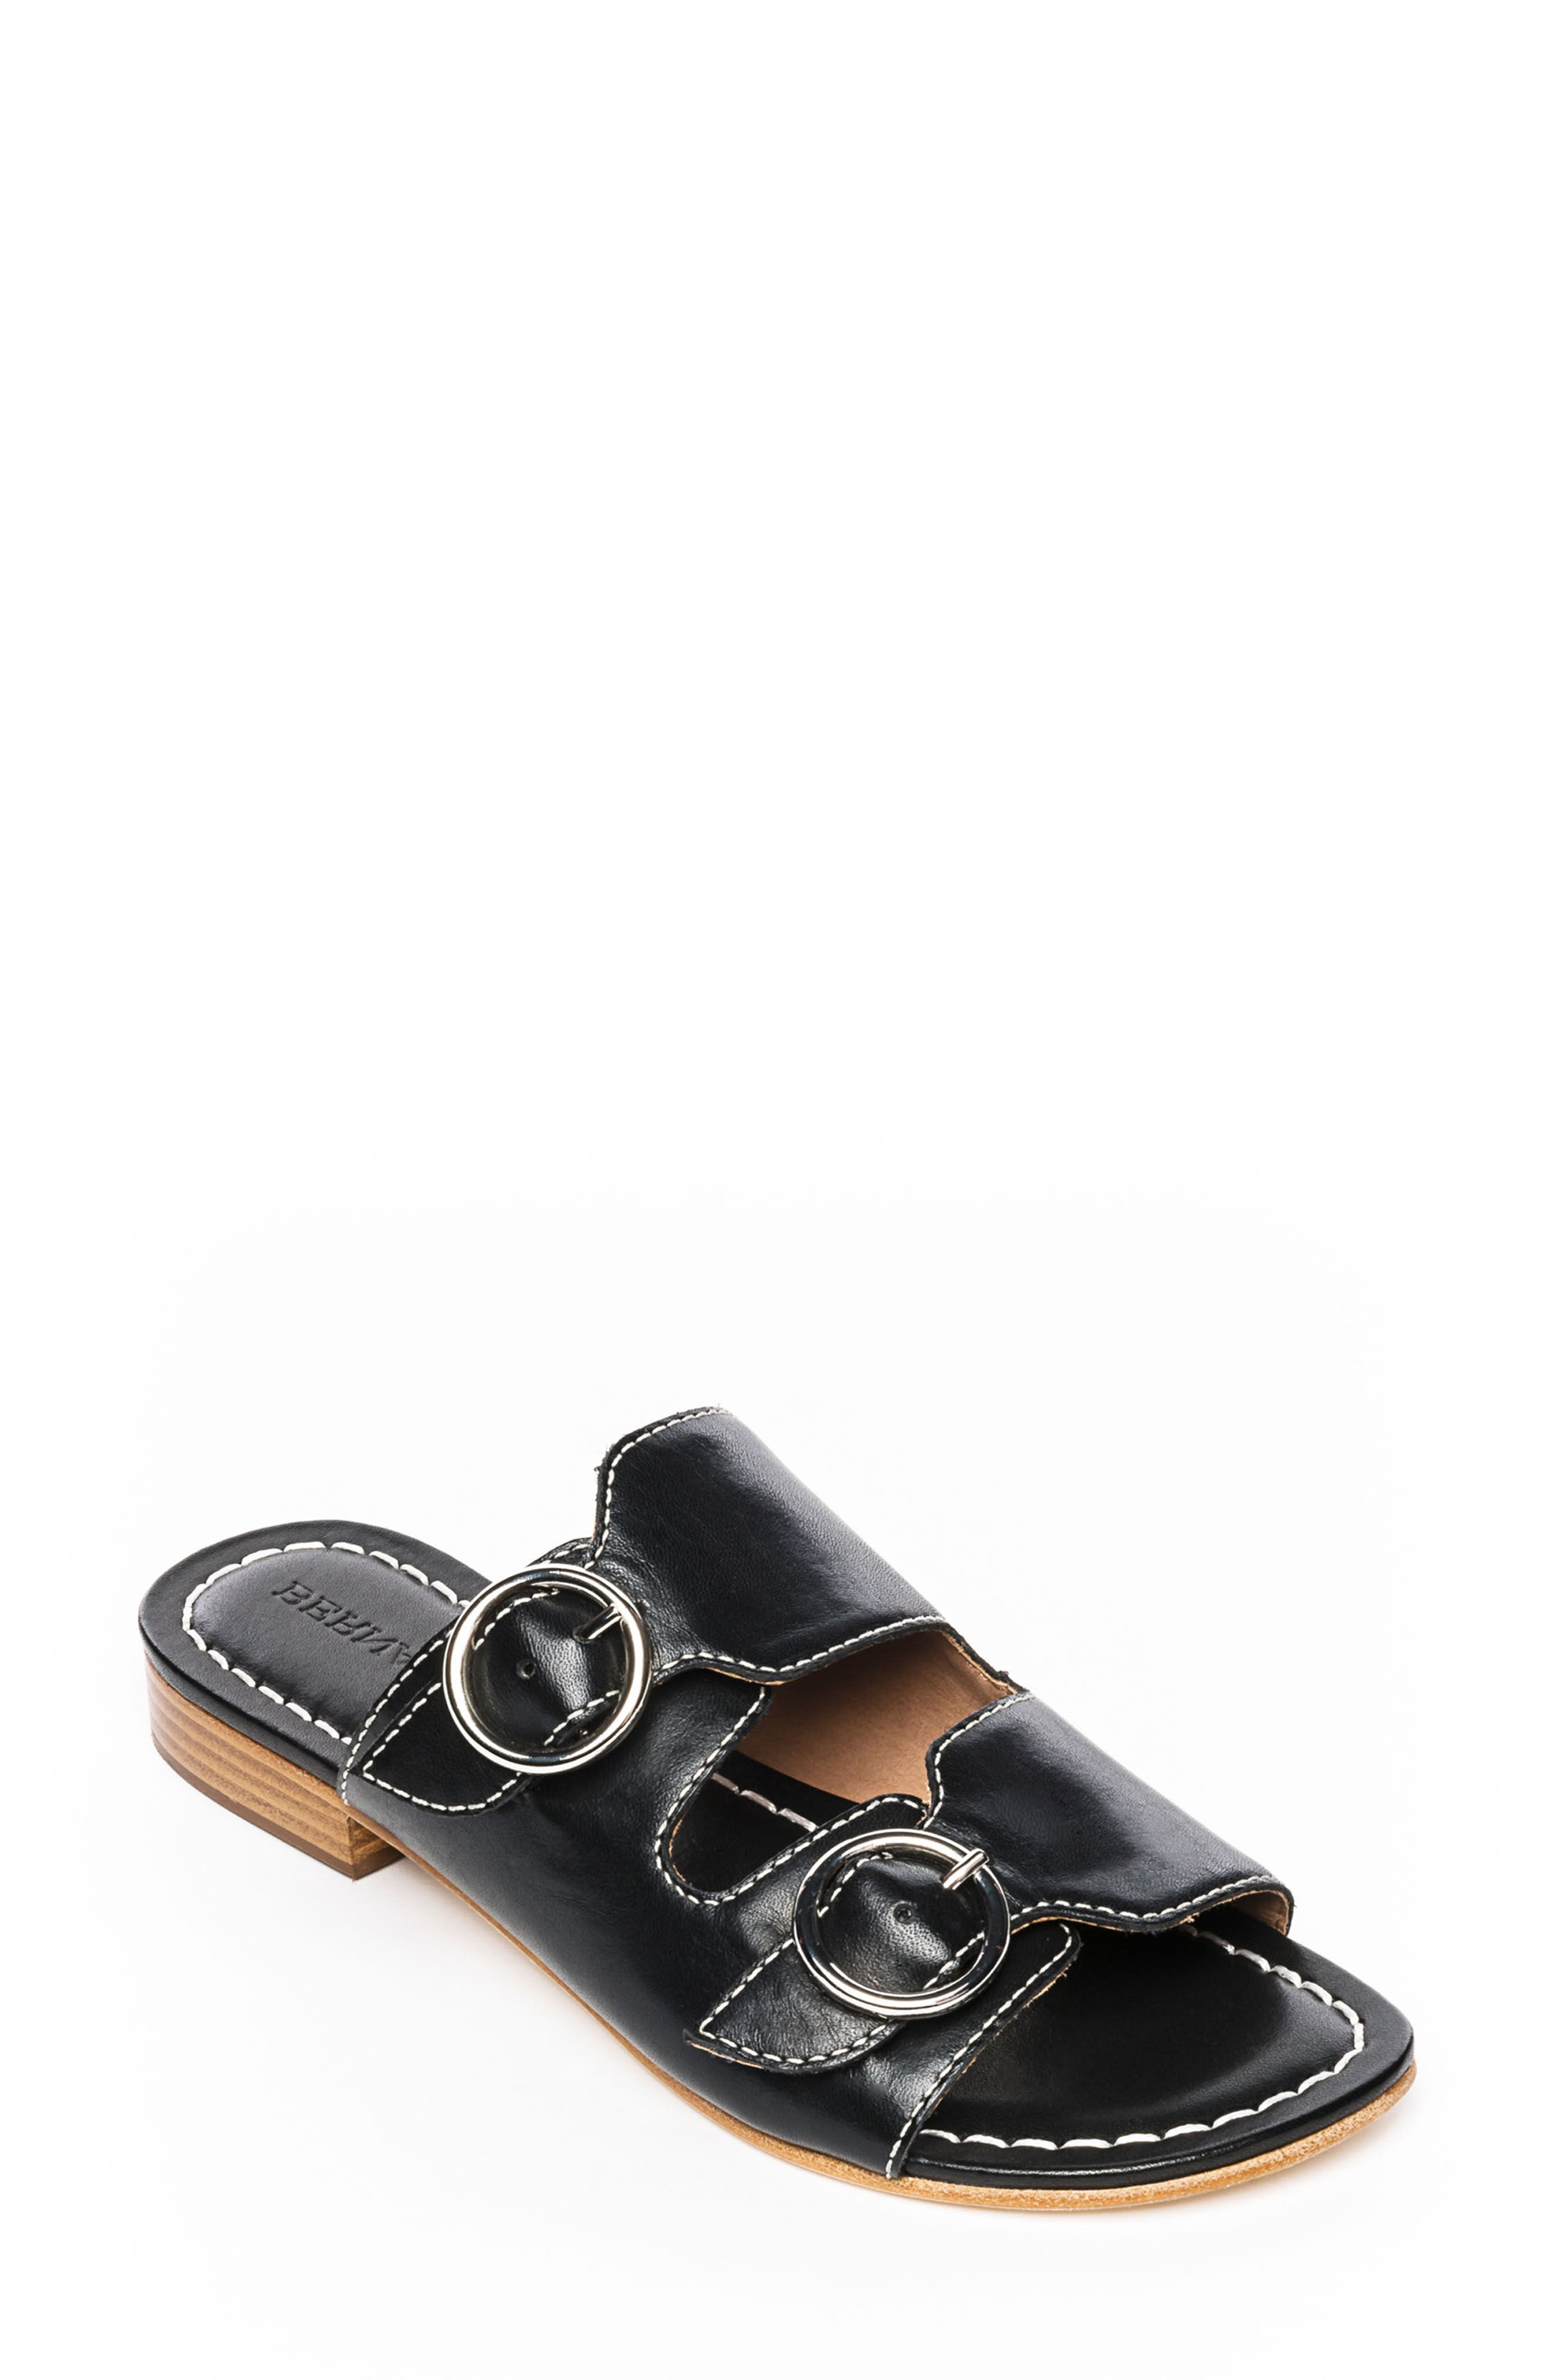 Bernardo Tobi Slide Sandal,                             Main thumbnail 1, color,                             Black Leather